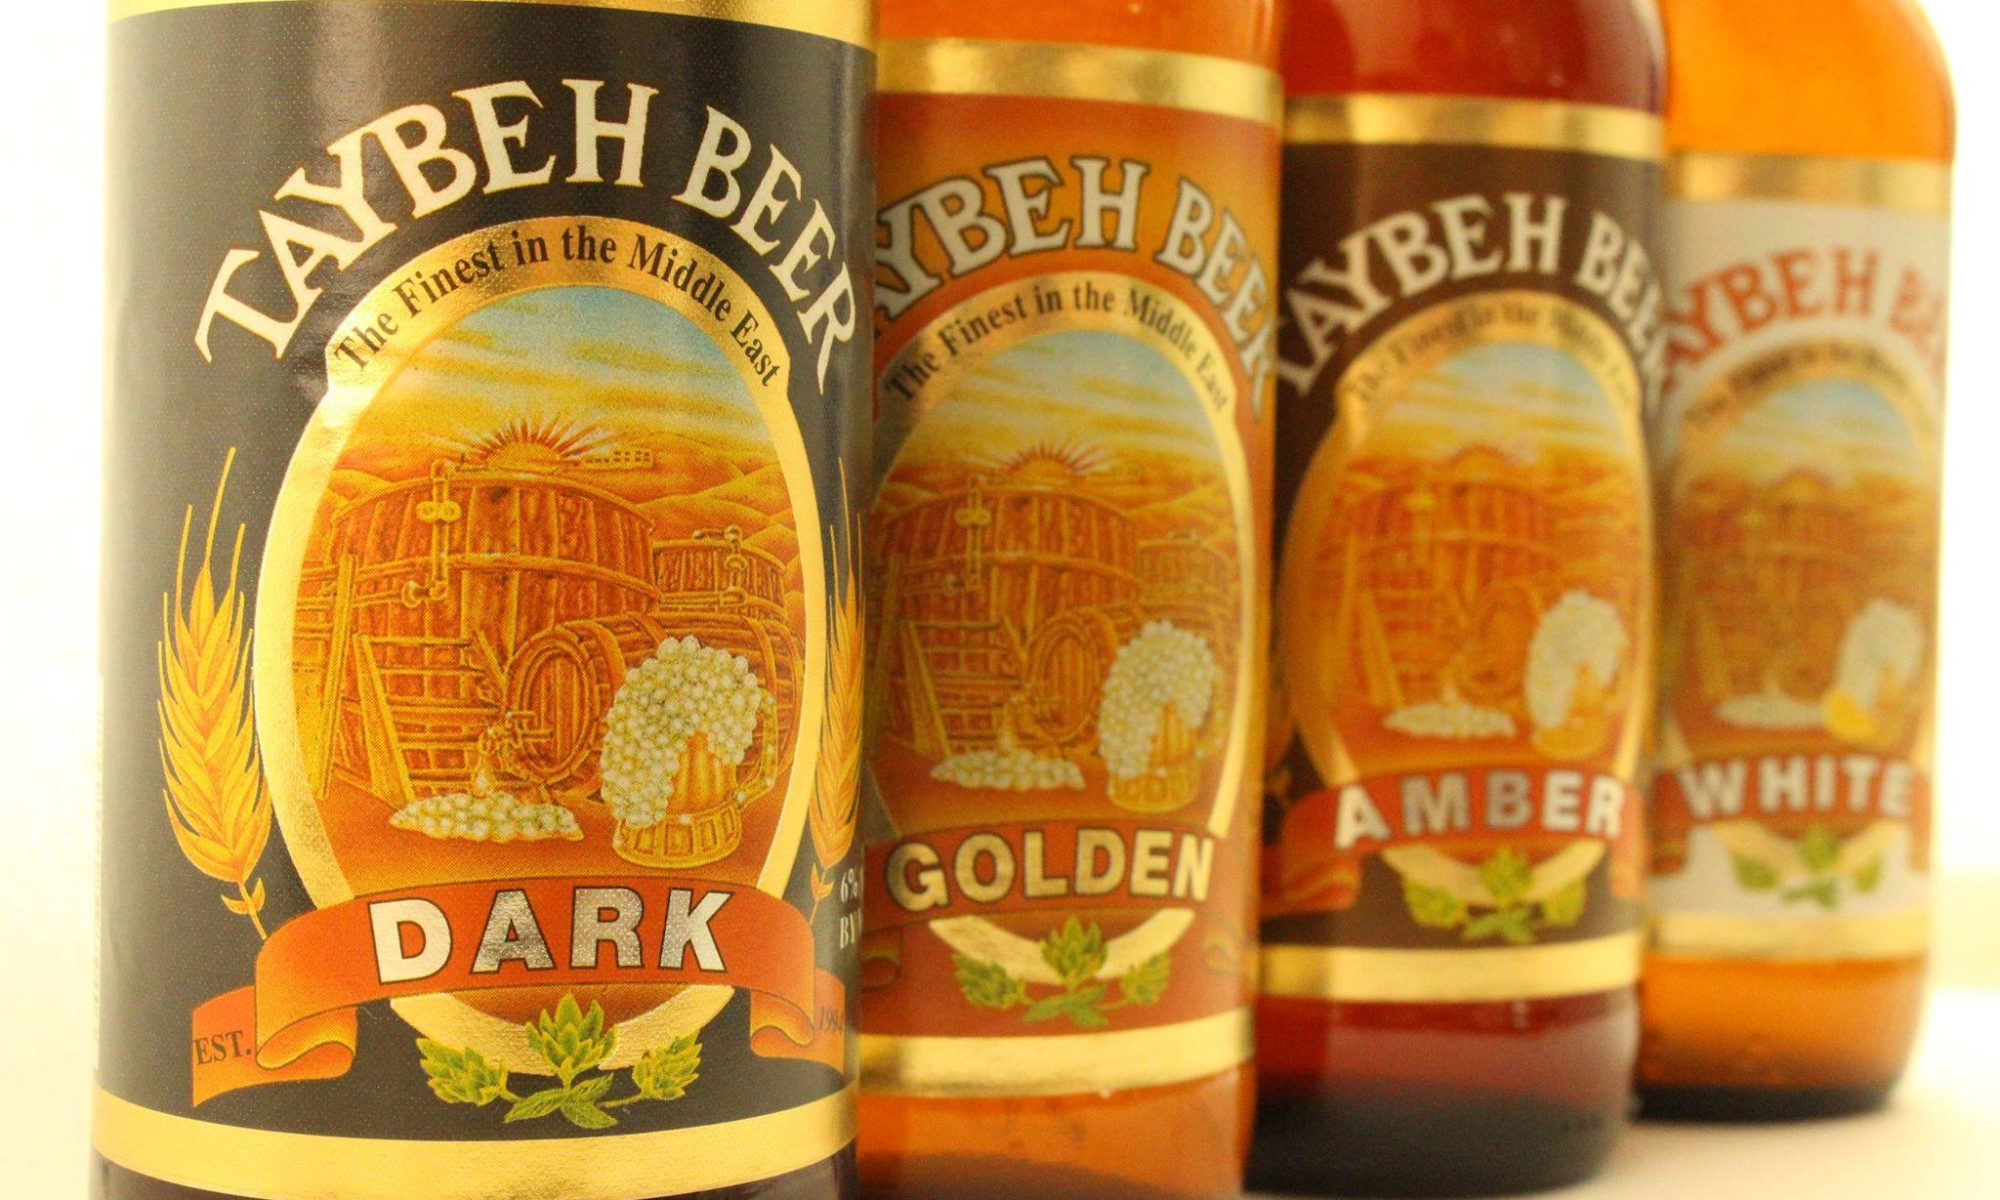 Taybeh beer: Dark, White, IPA, Amber, Golden